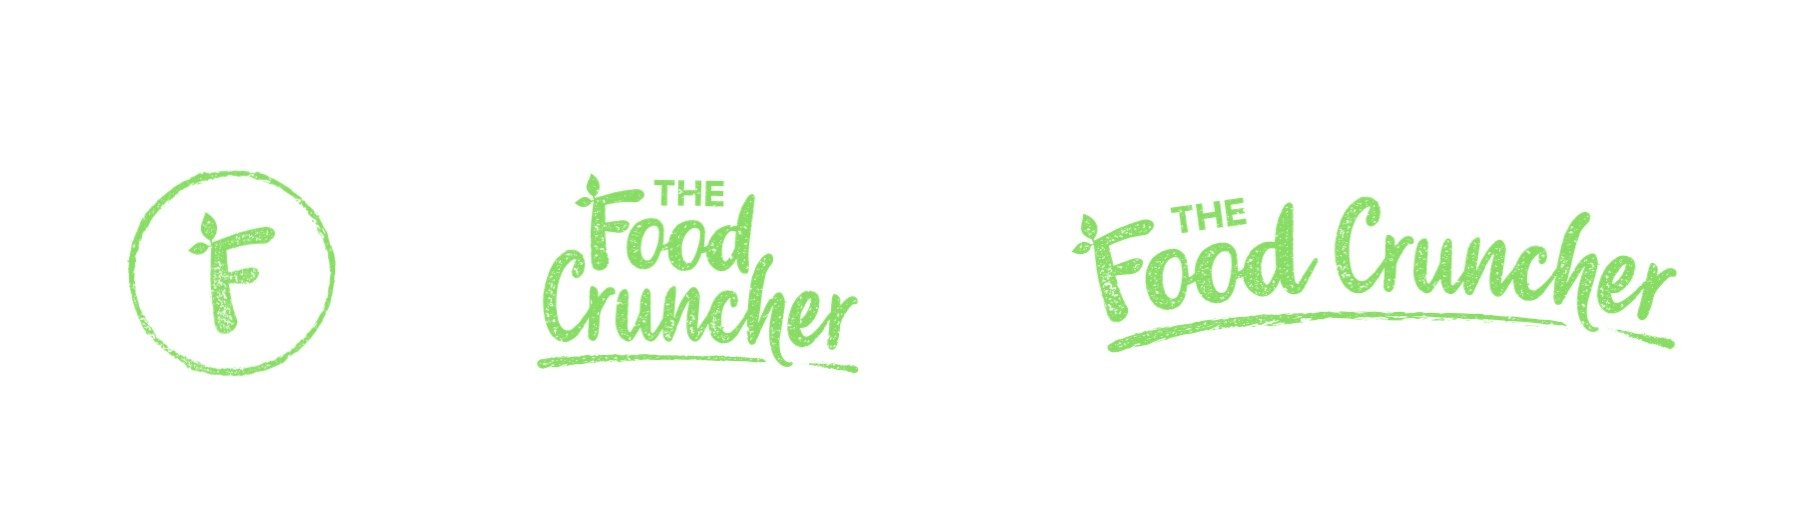 Logo - The Food Cruncher